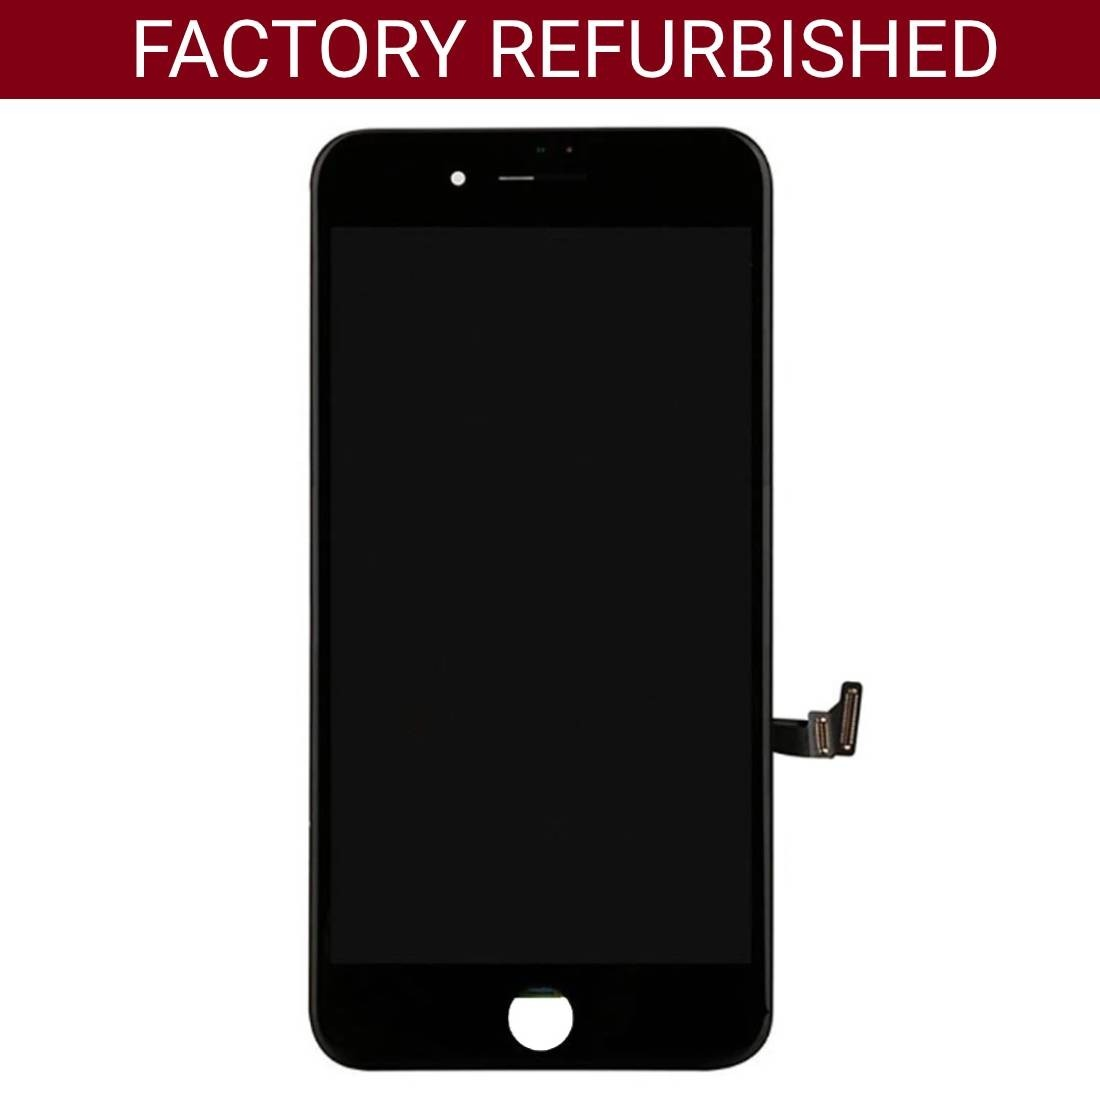 Refurbished LCD Screen Replacement for iPhone 7 Plus Black 5.5""